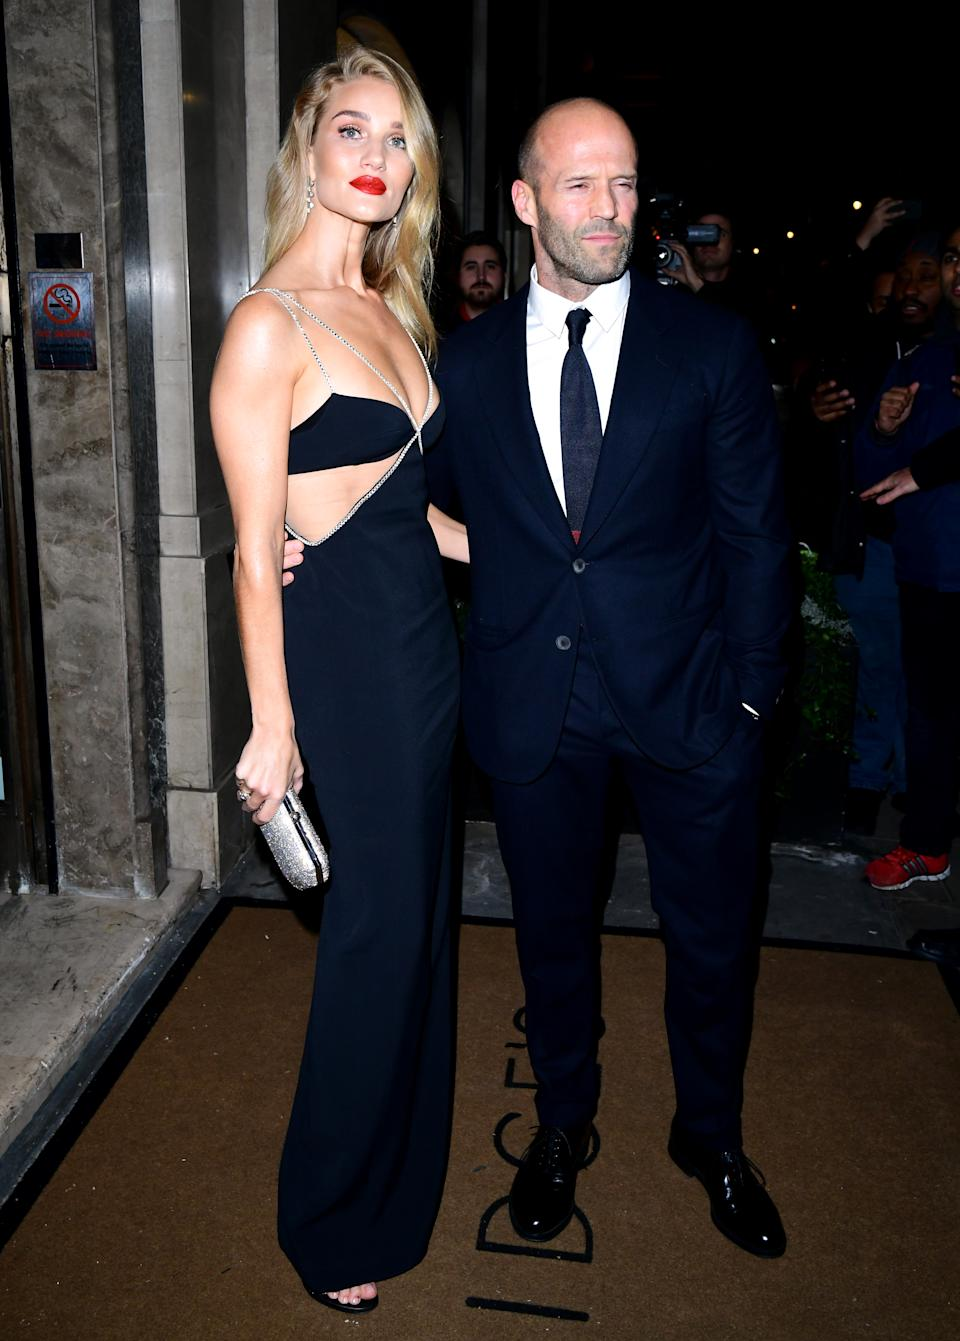 Rosie Huntington-Whiteley topped the best dressed list in a cut-out diamante detail dress. [Photo: Getty]